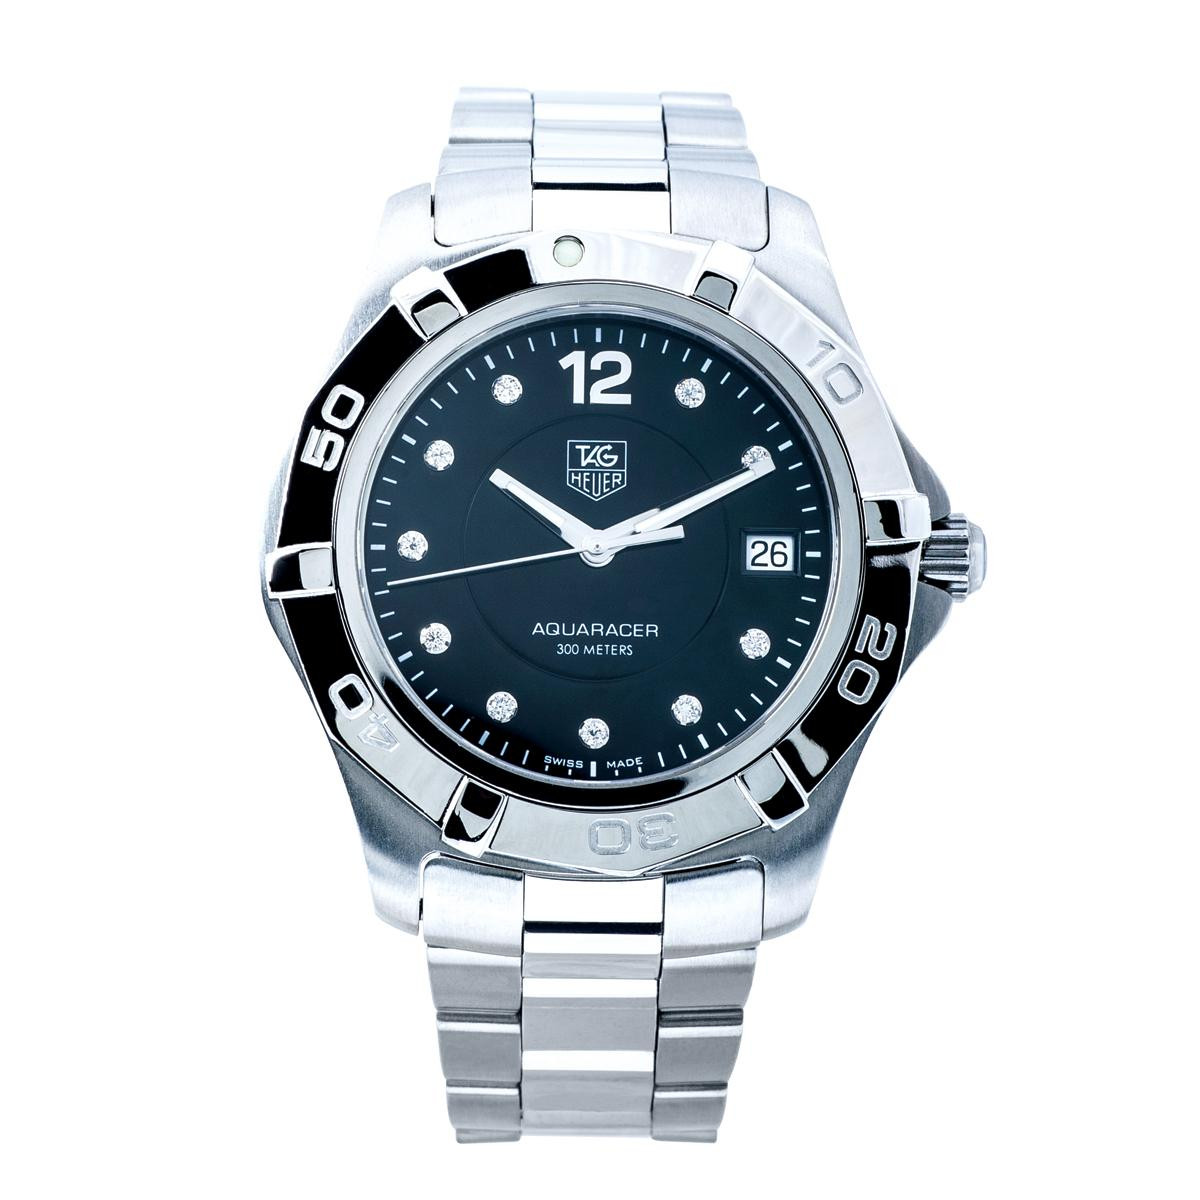 Preowned Tag Heuer Aquaracer with Diamond Dial